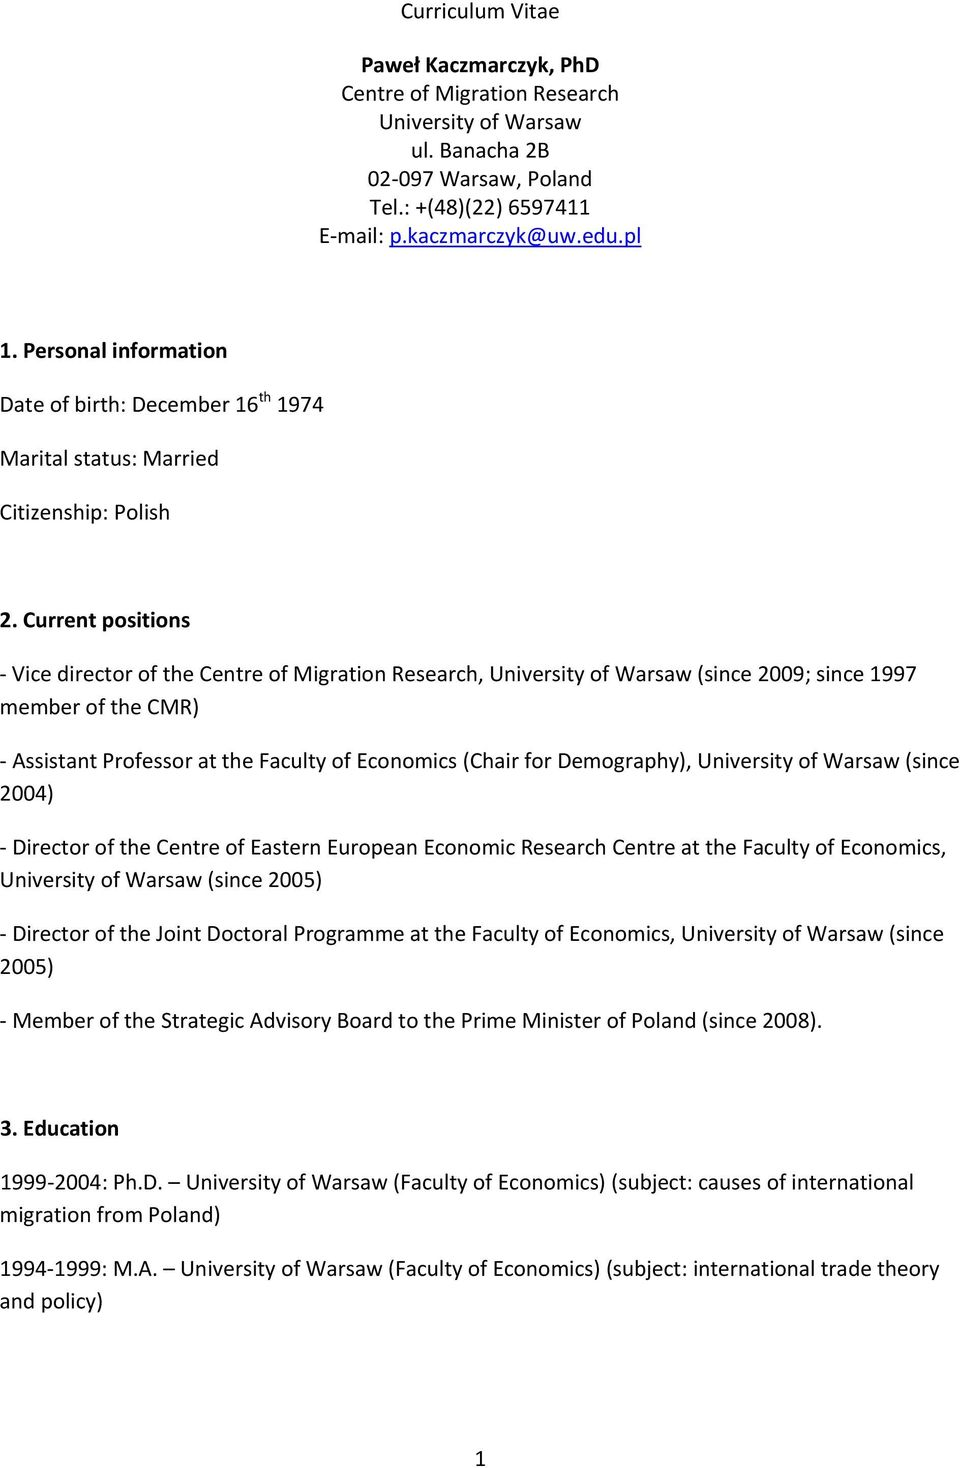 Current positions Vice director of the Centre of Migration Research, University of Warsaw (since 2009; since 1997 member of the CMR) Assistant Professor at the Faculty of Economics (Chair for